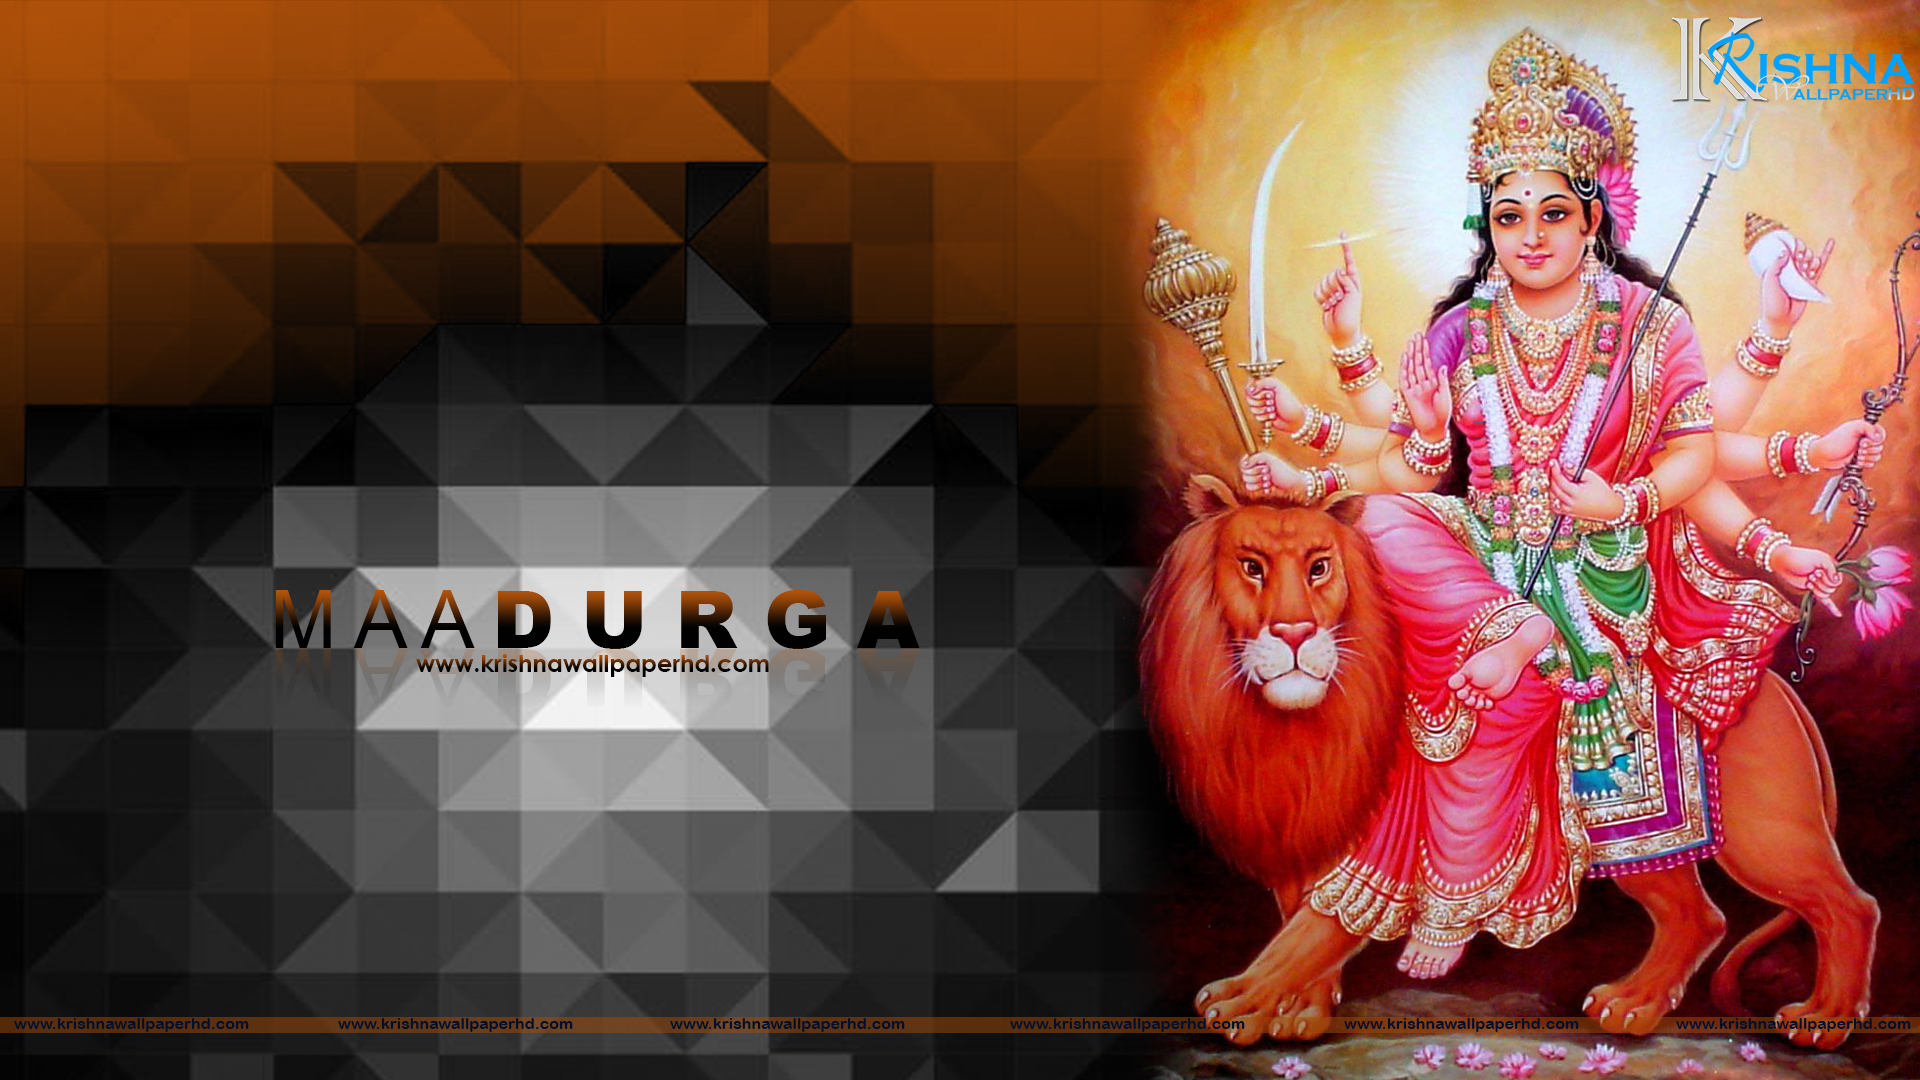 Maa Durga HD Wallpaper 1920x1080